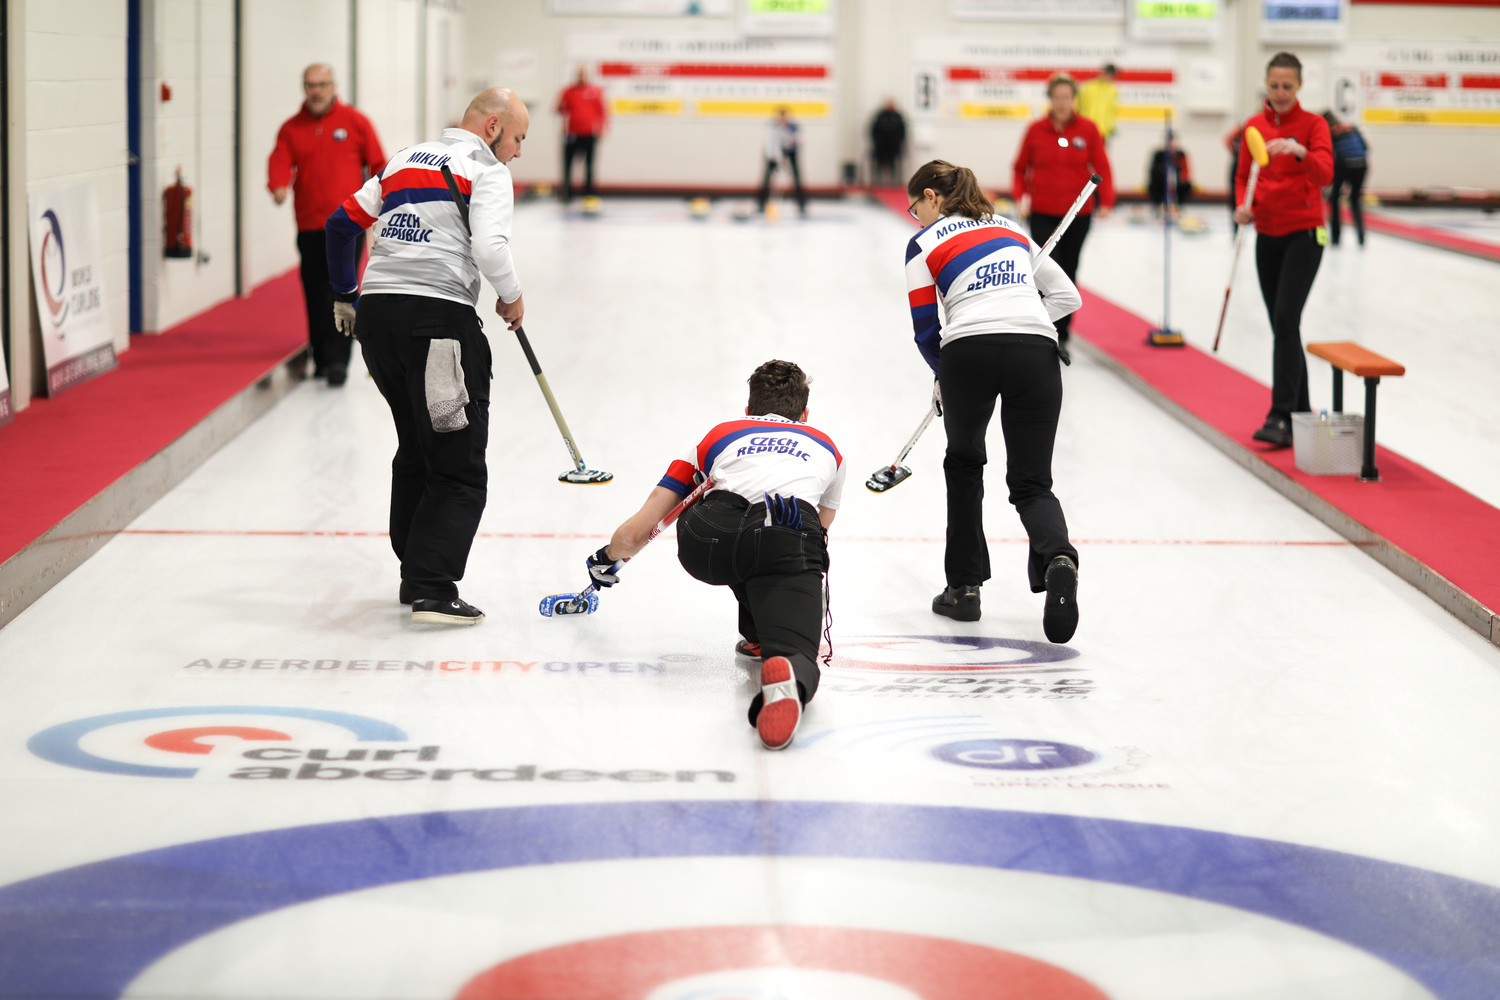 Czech Republic are in a three-way tie for first place in Group B ©WCF/Stephen Fisher